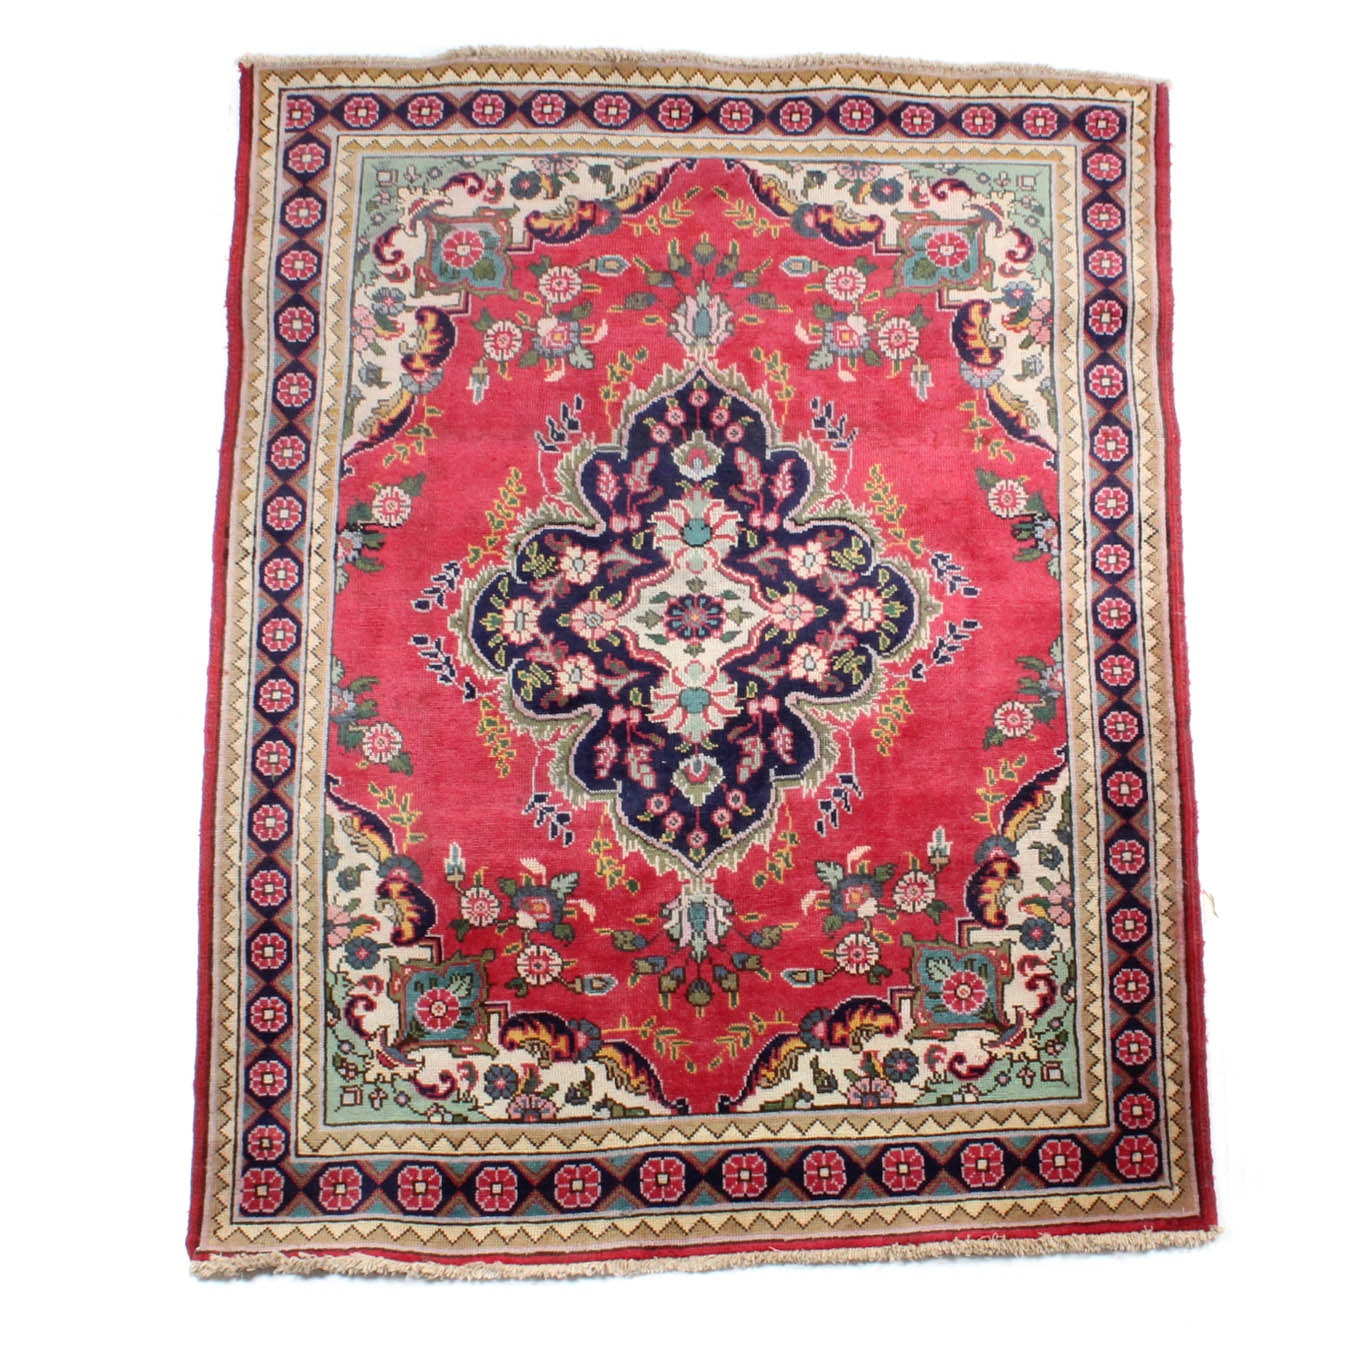 5' x 6' Vintage Hand-Knotted Persian Tabriz Area Rug